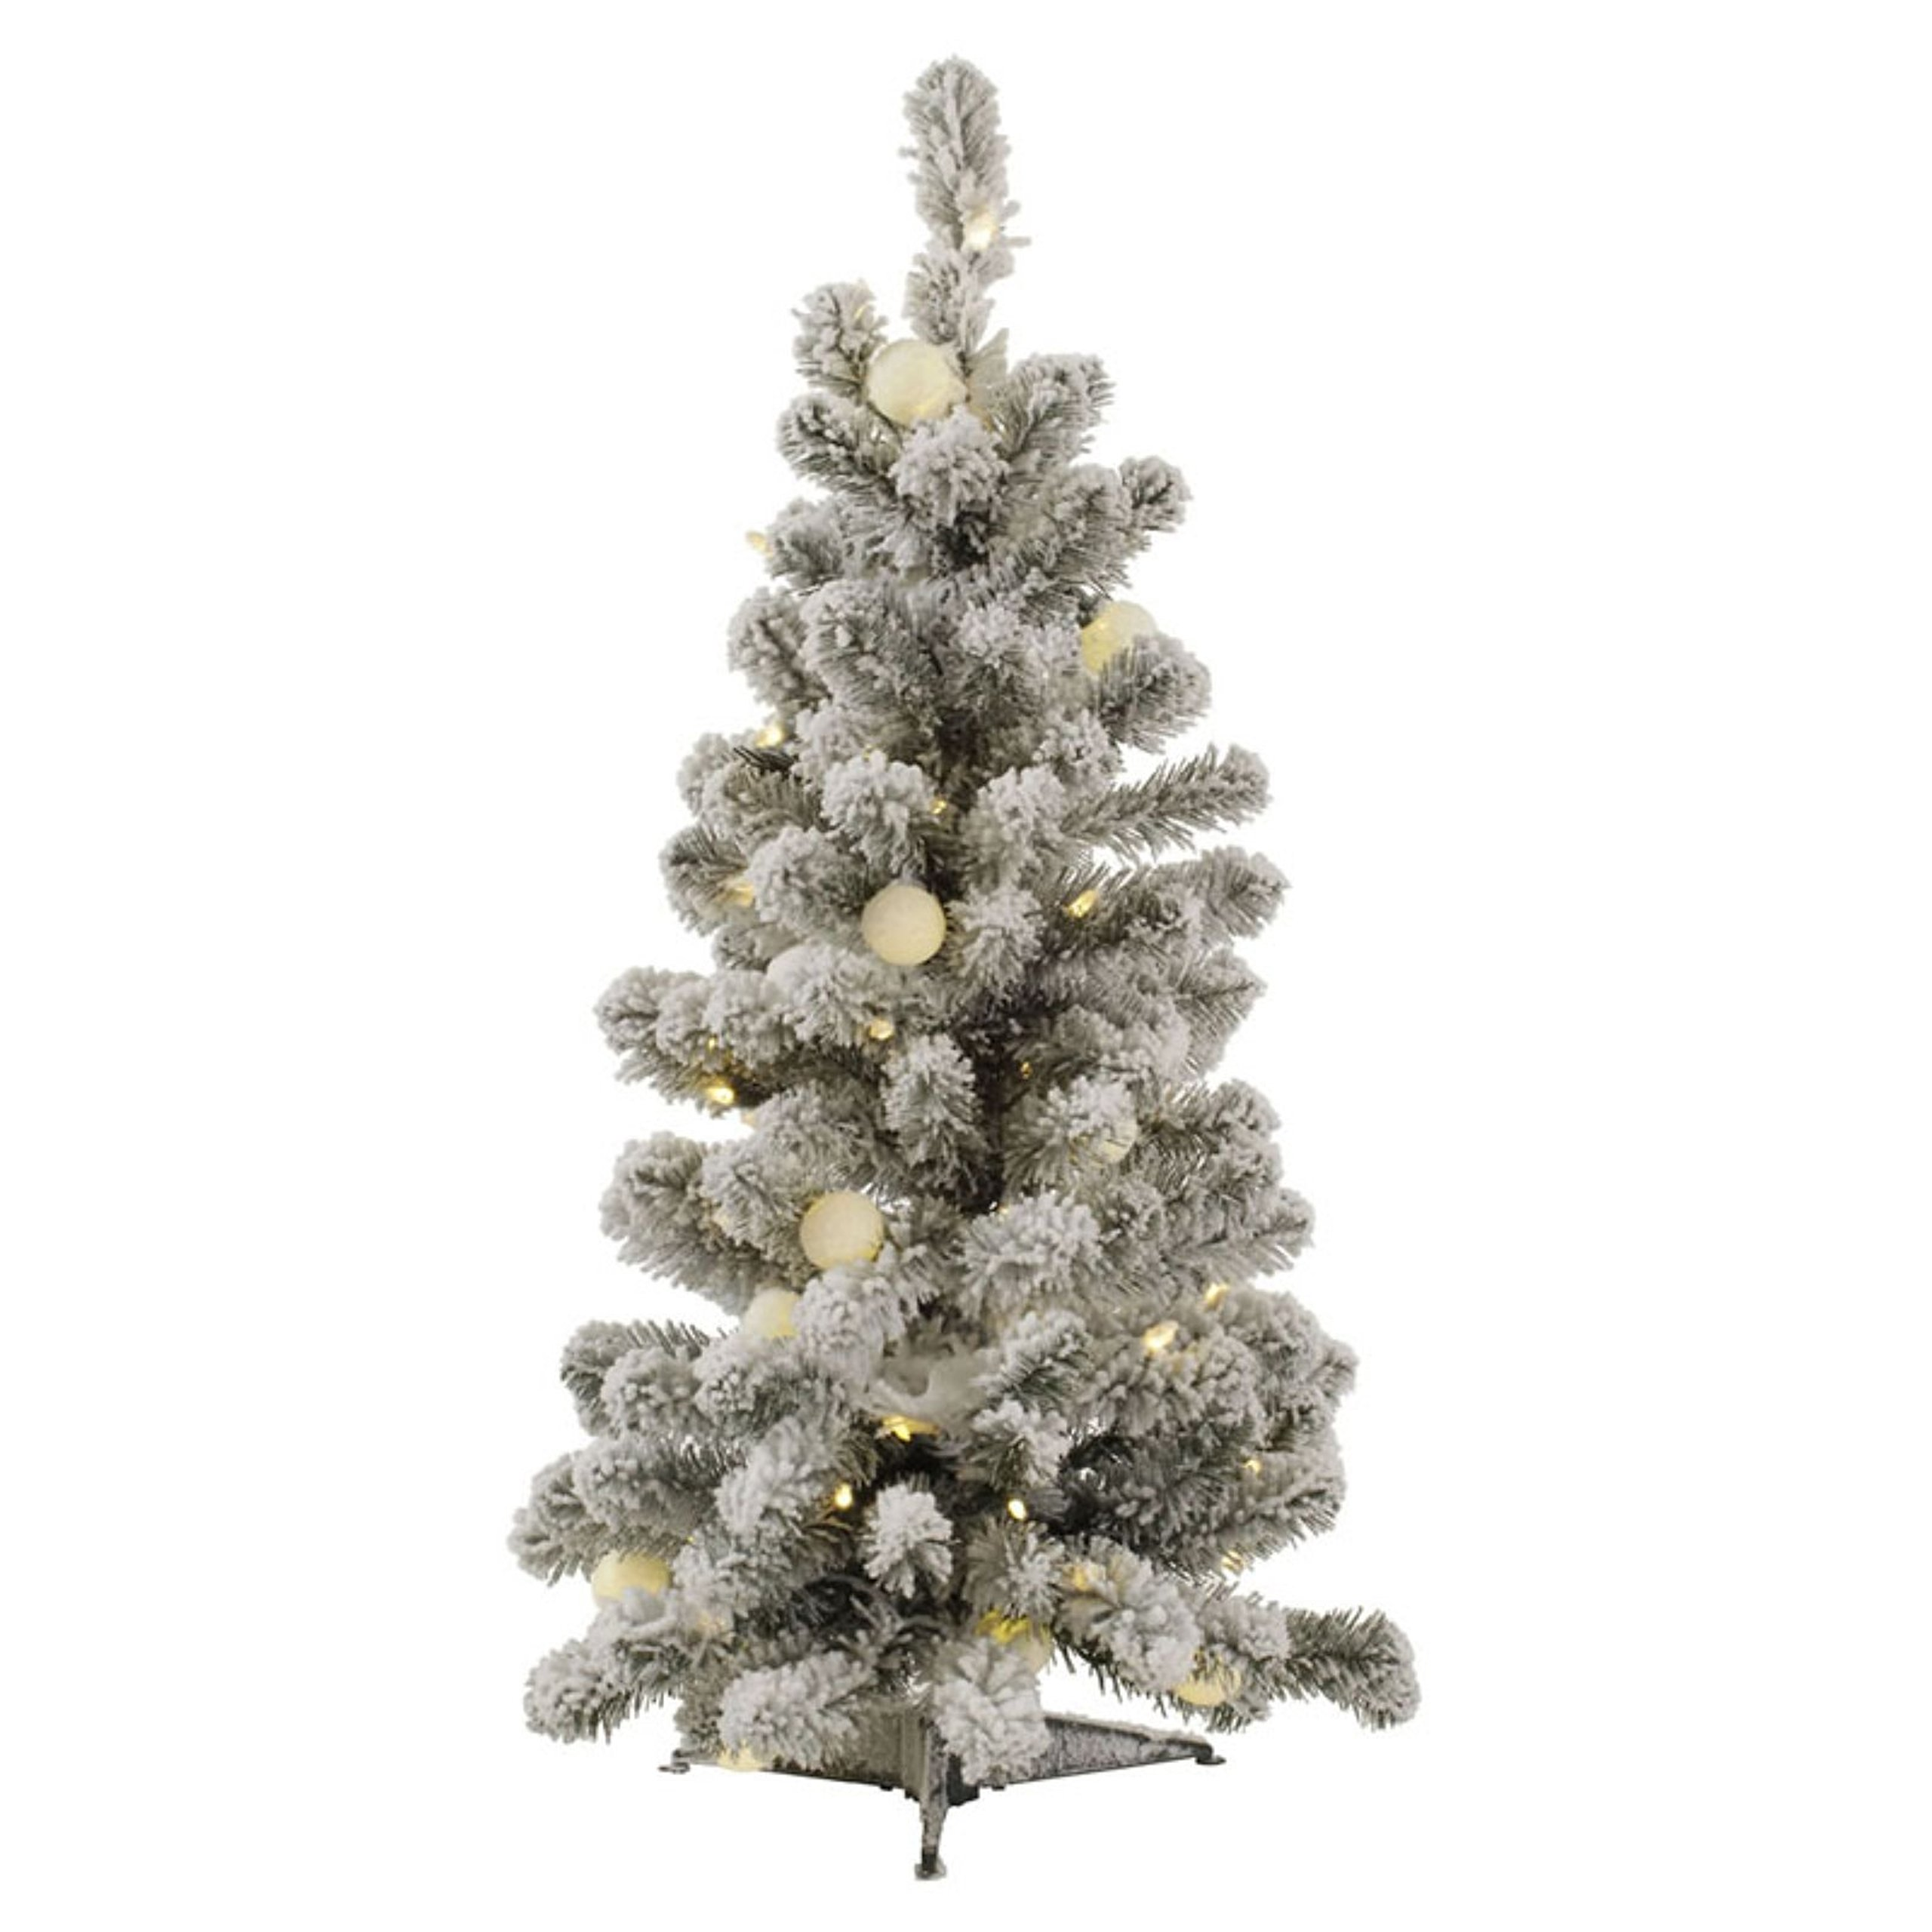 3Ft Flocked Kodiak Spruce Artificial Christmas Tree with Multi-Colored 50/15G40 LED Lights by Vicker Man